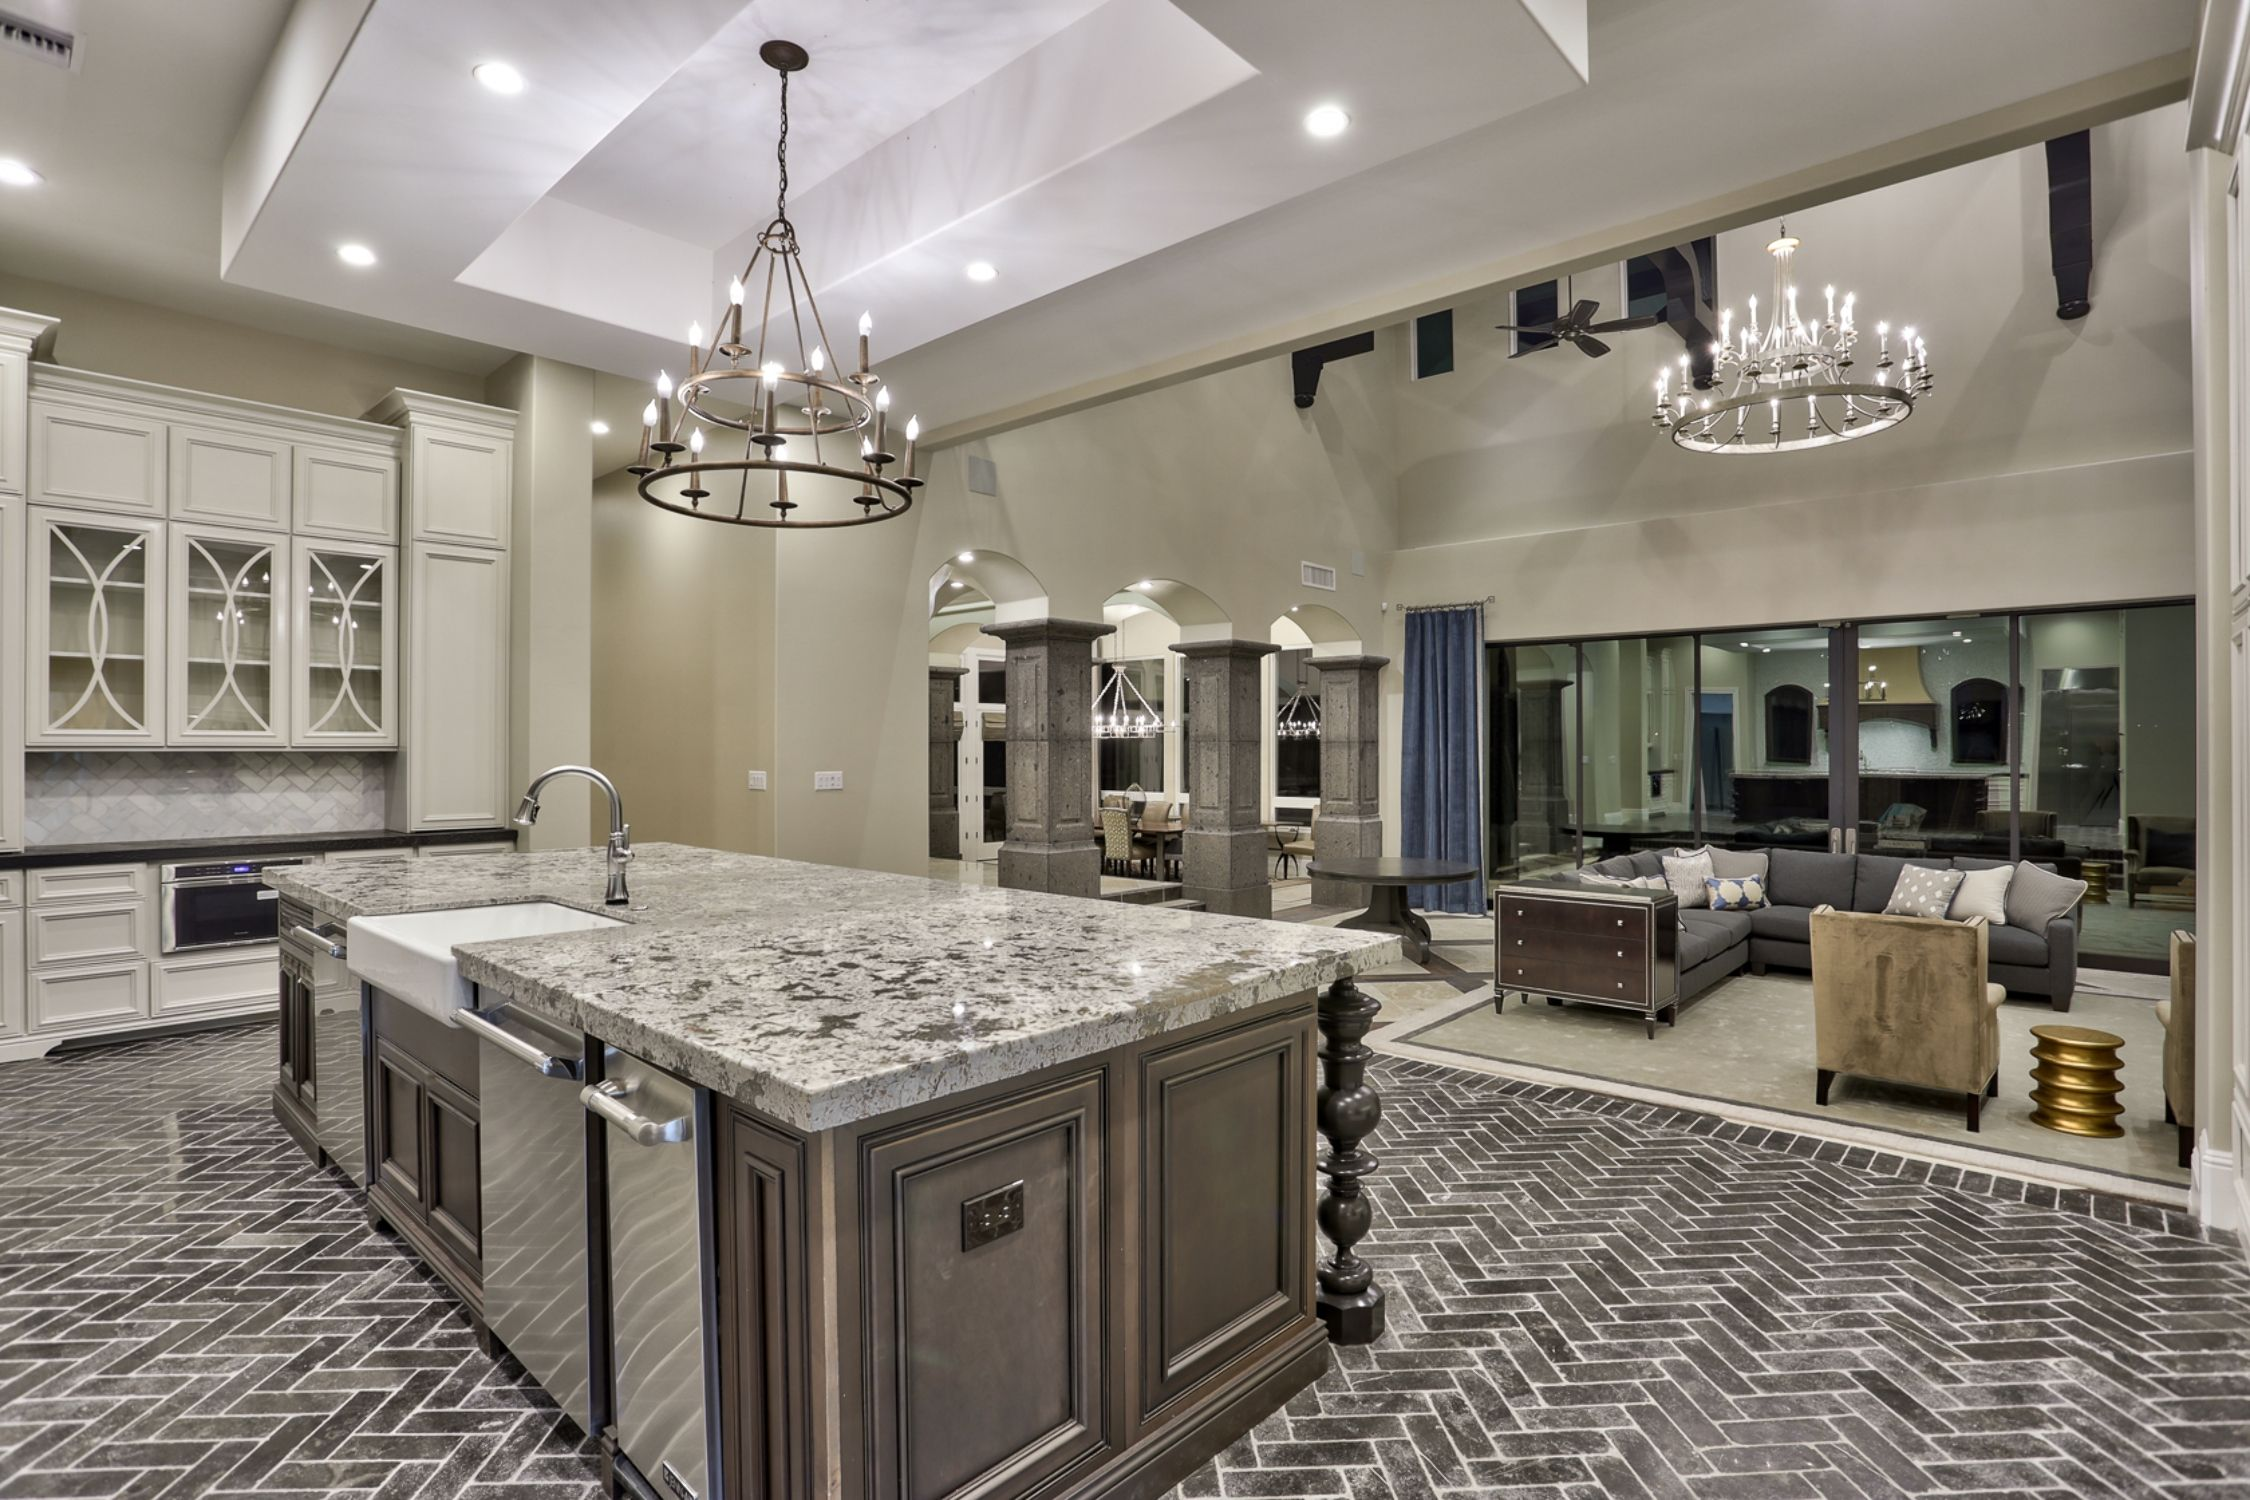 Transitional Home Design Gourmet Kitchen Steps Down